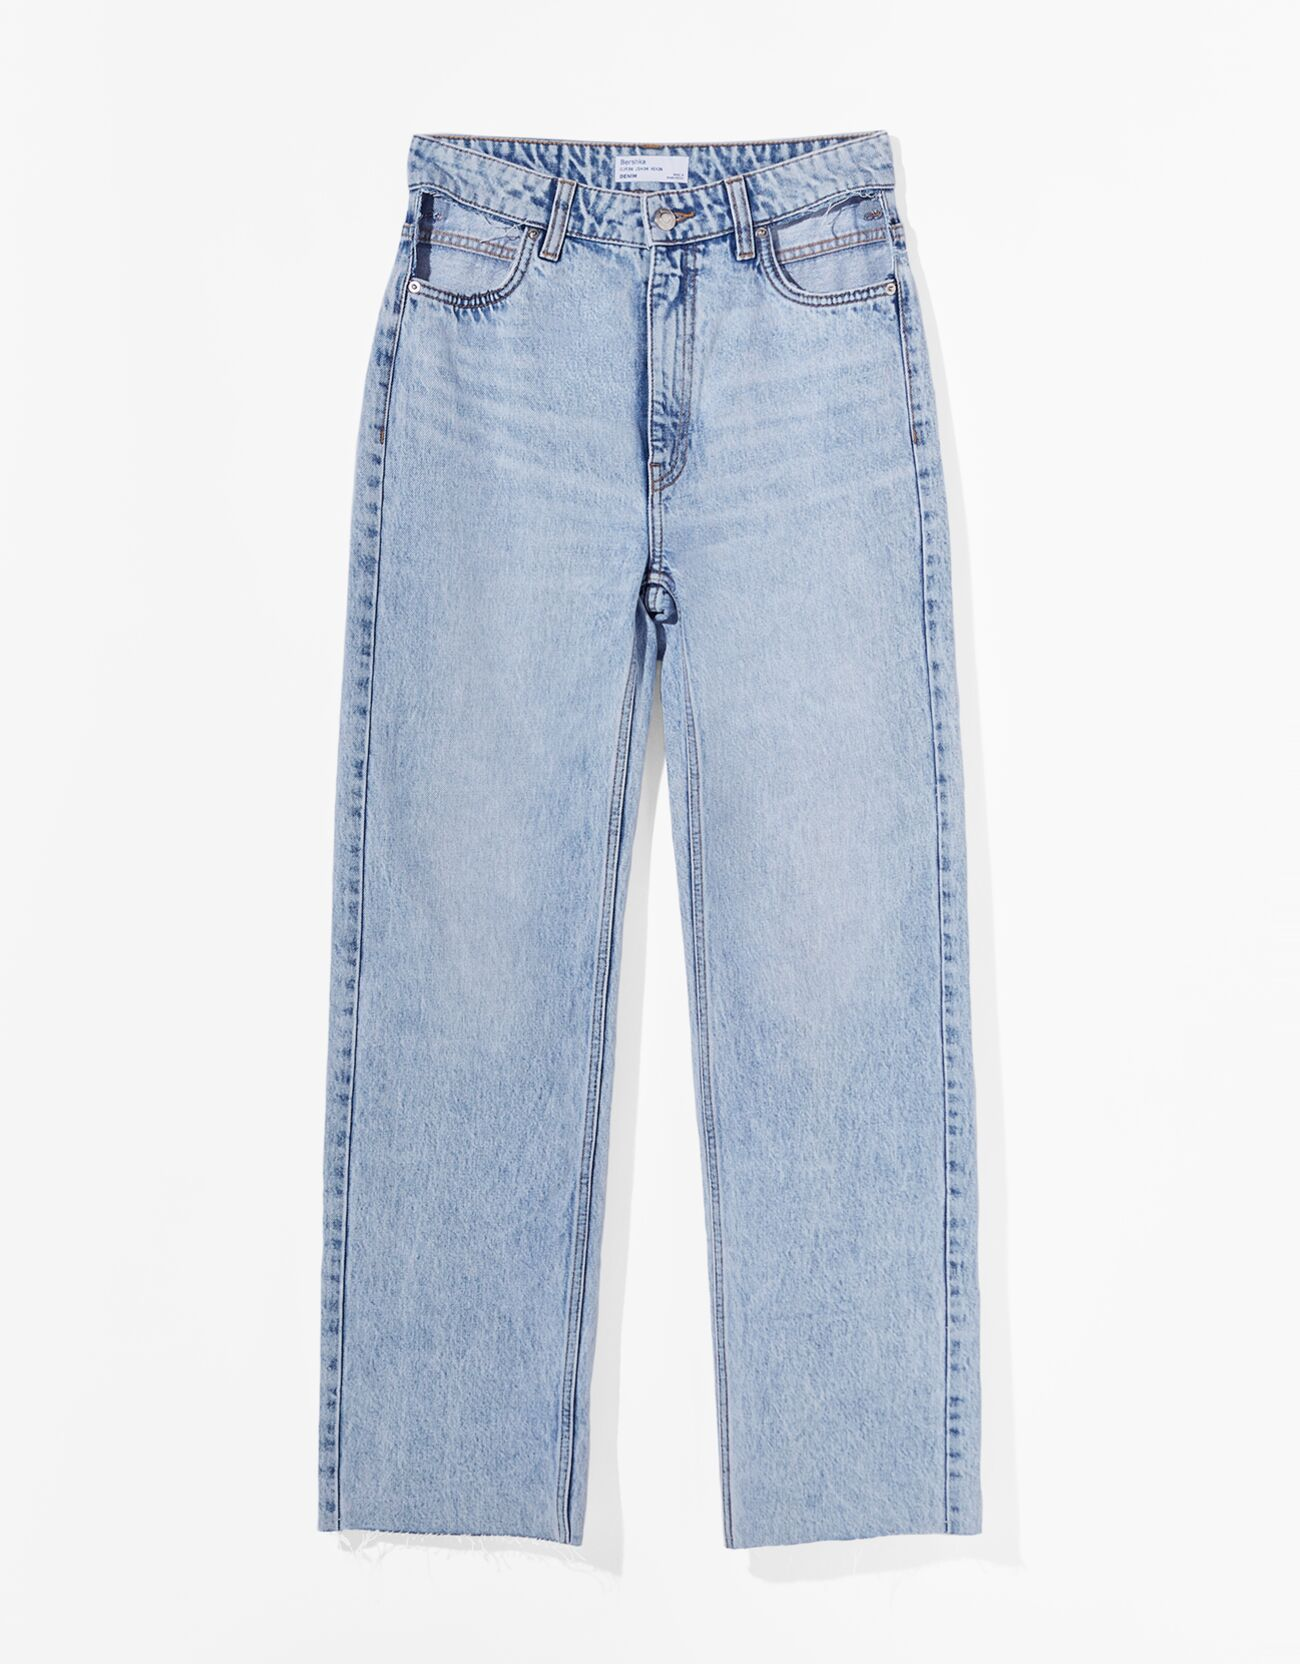 Jeans straight high waist cut out.